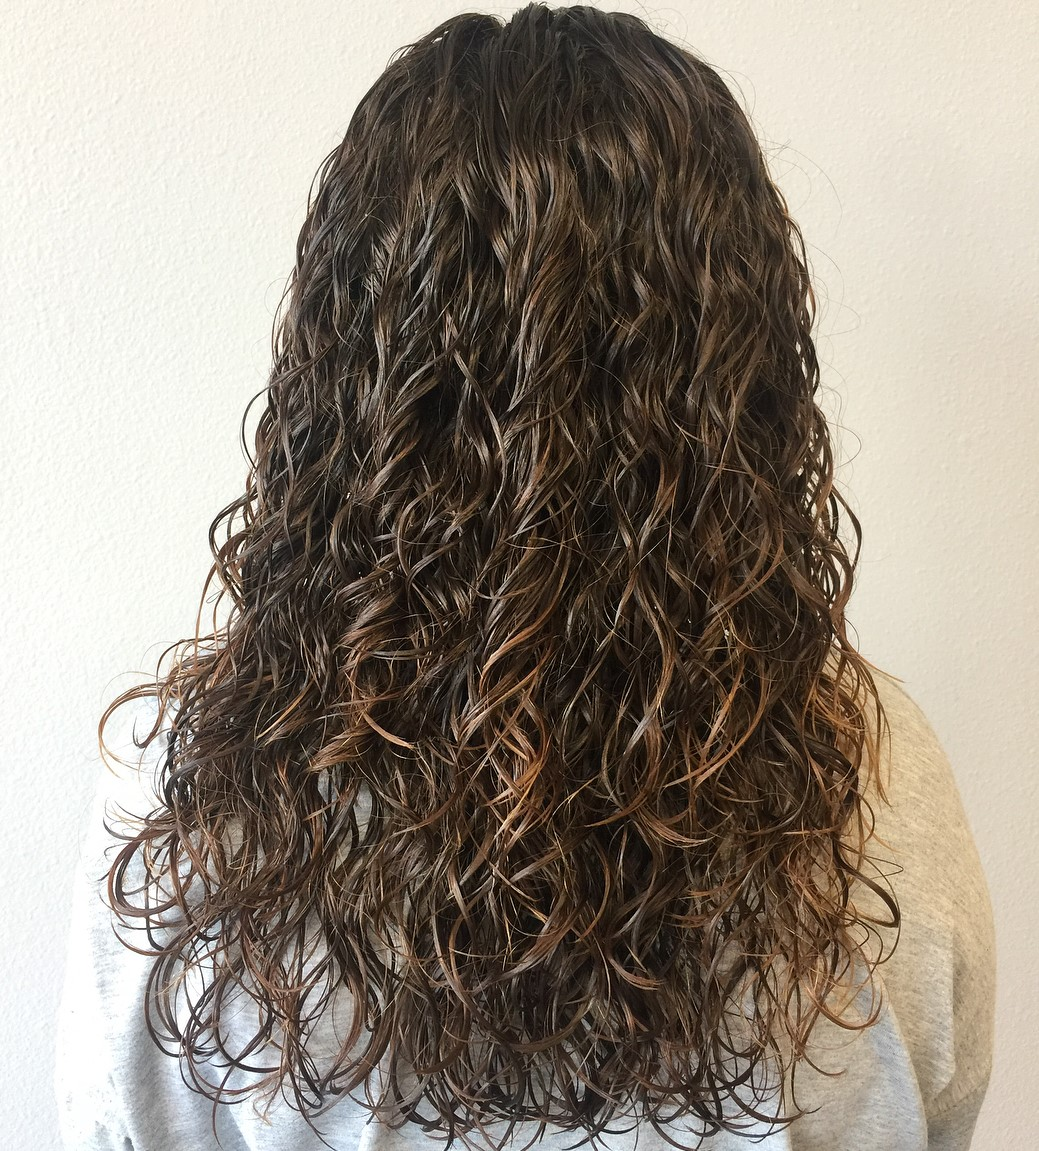 Wet Bouncy Curly Hairstyle for Long Hair